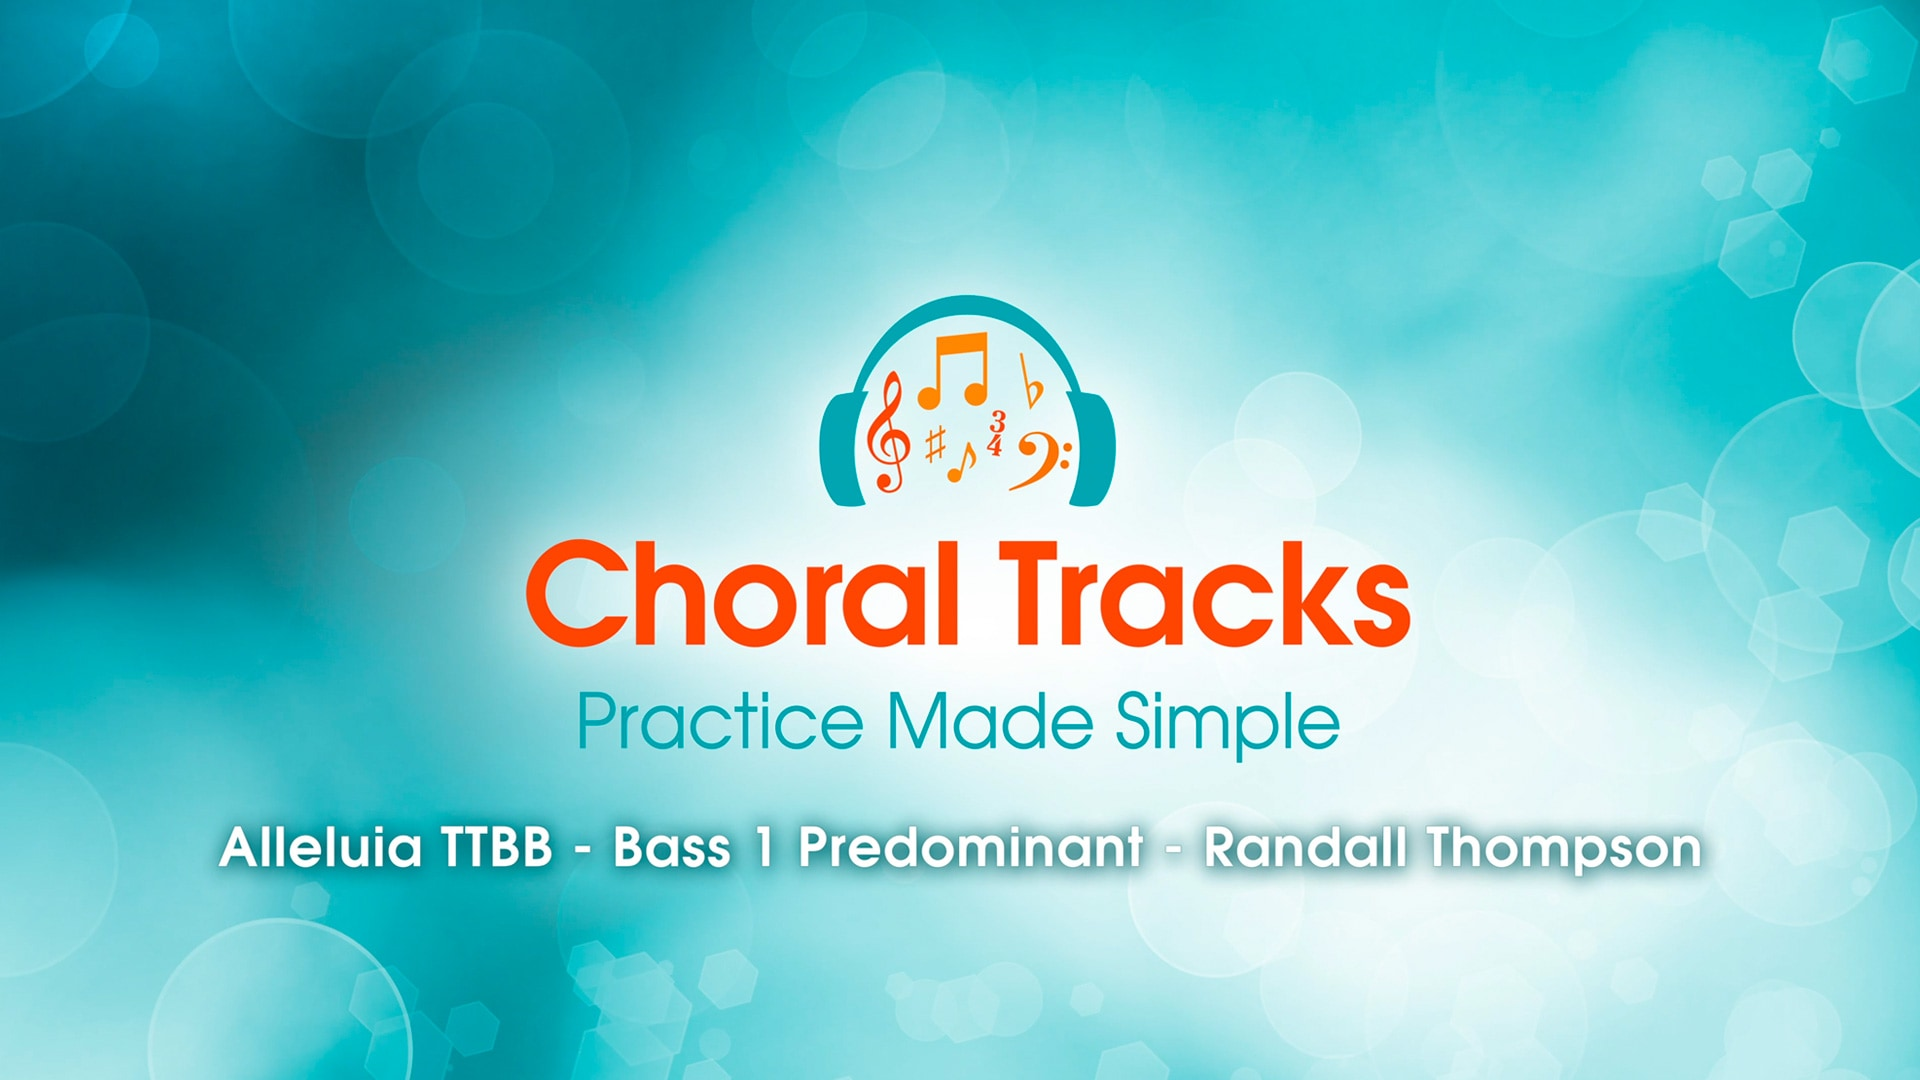 The BLÜ Group Client Work: Choral Tracks - Video of Alleluia (TTBB), Bass1 Predominant by Randall Thompson, Sung by Matthew Curtis